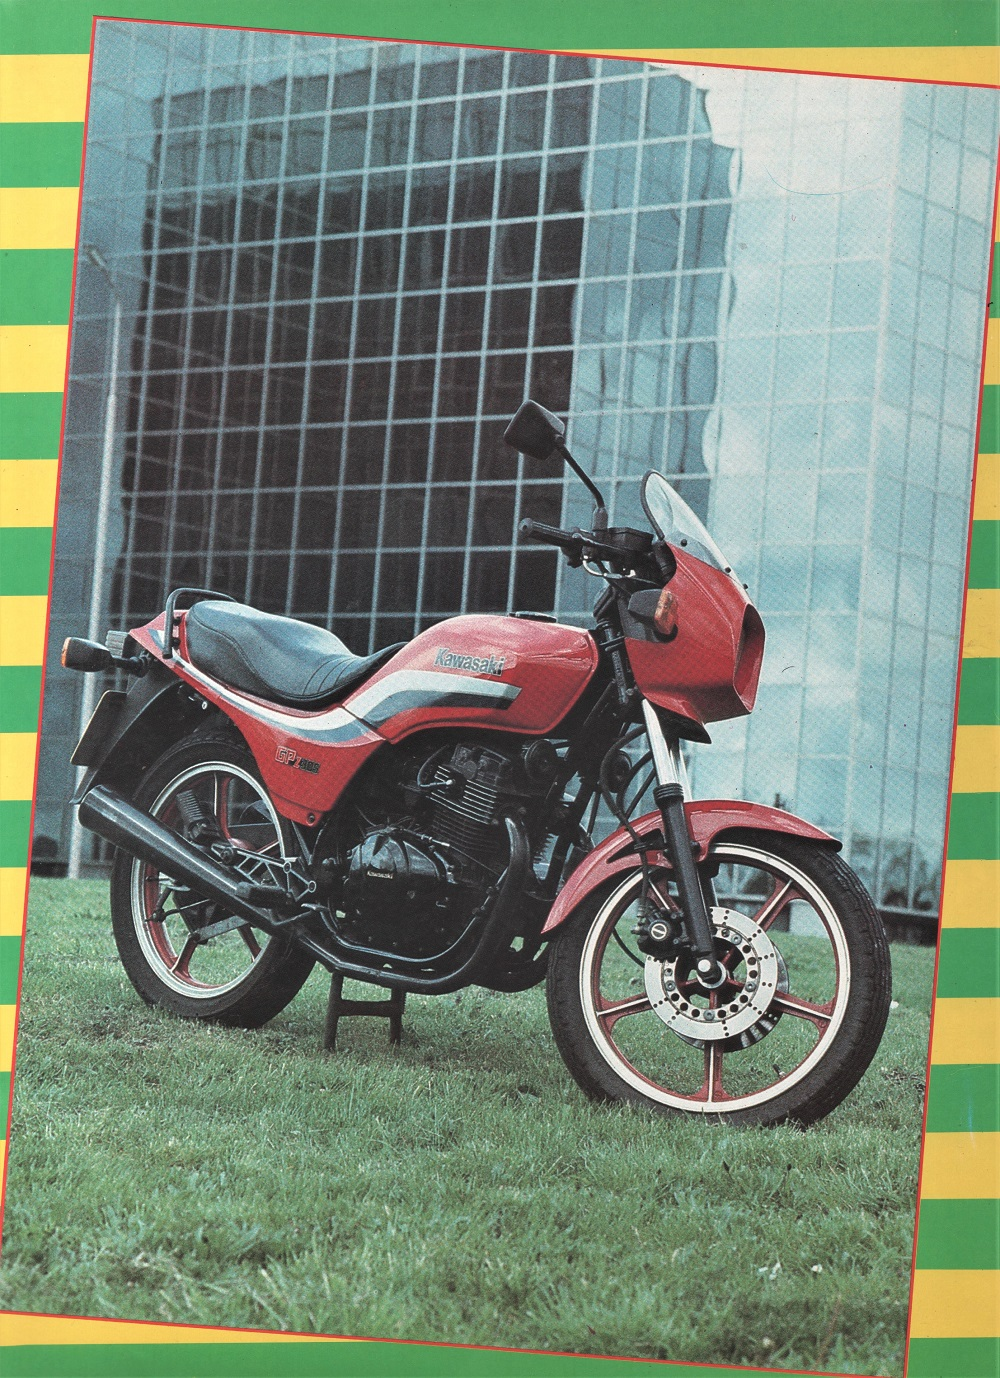 1983 Kawasaki Gpz305 road test.5.jpg